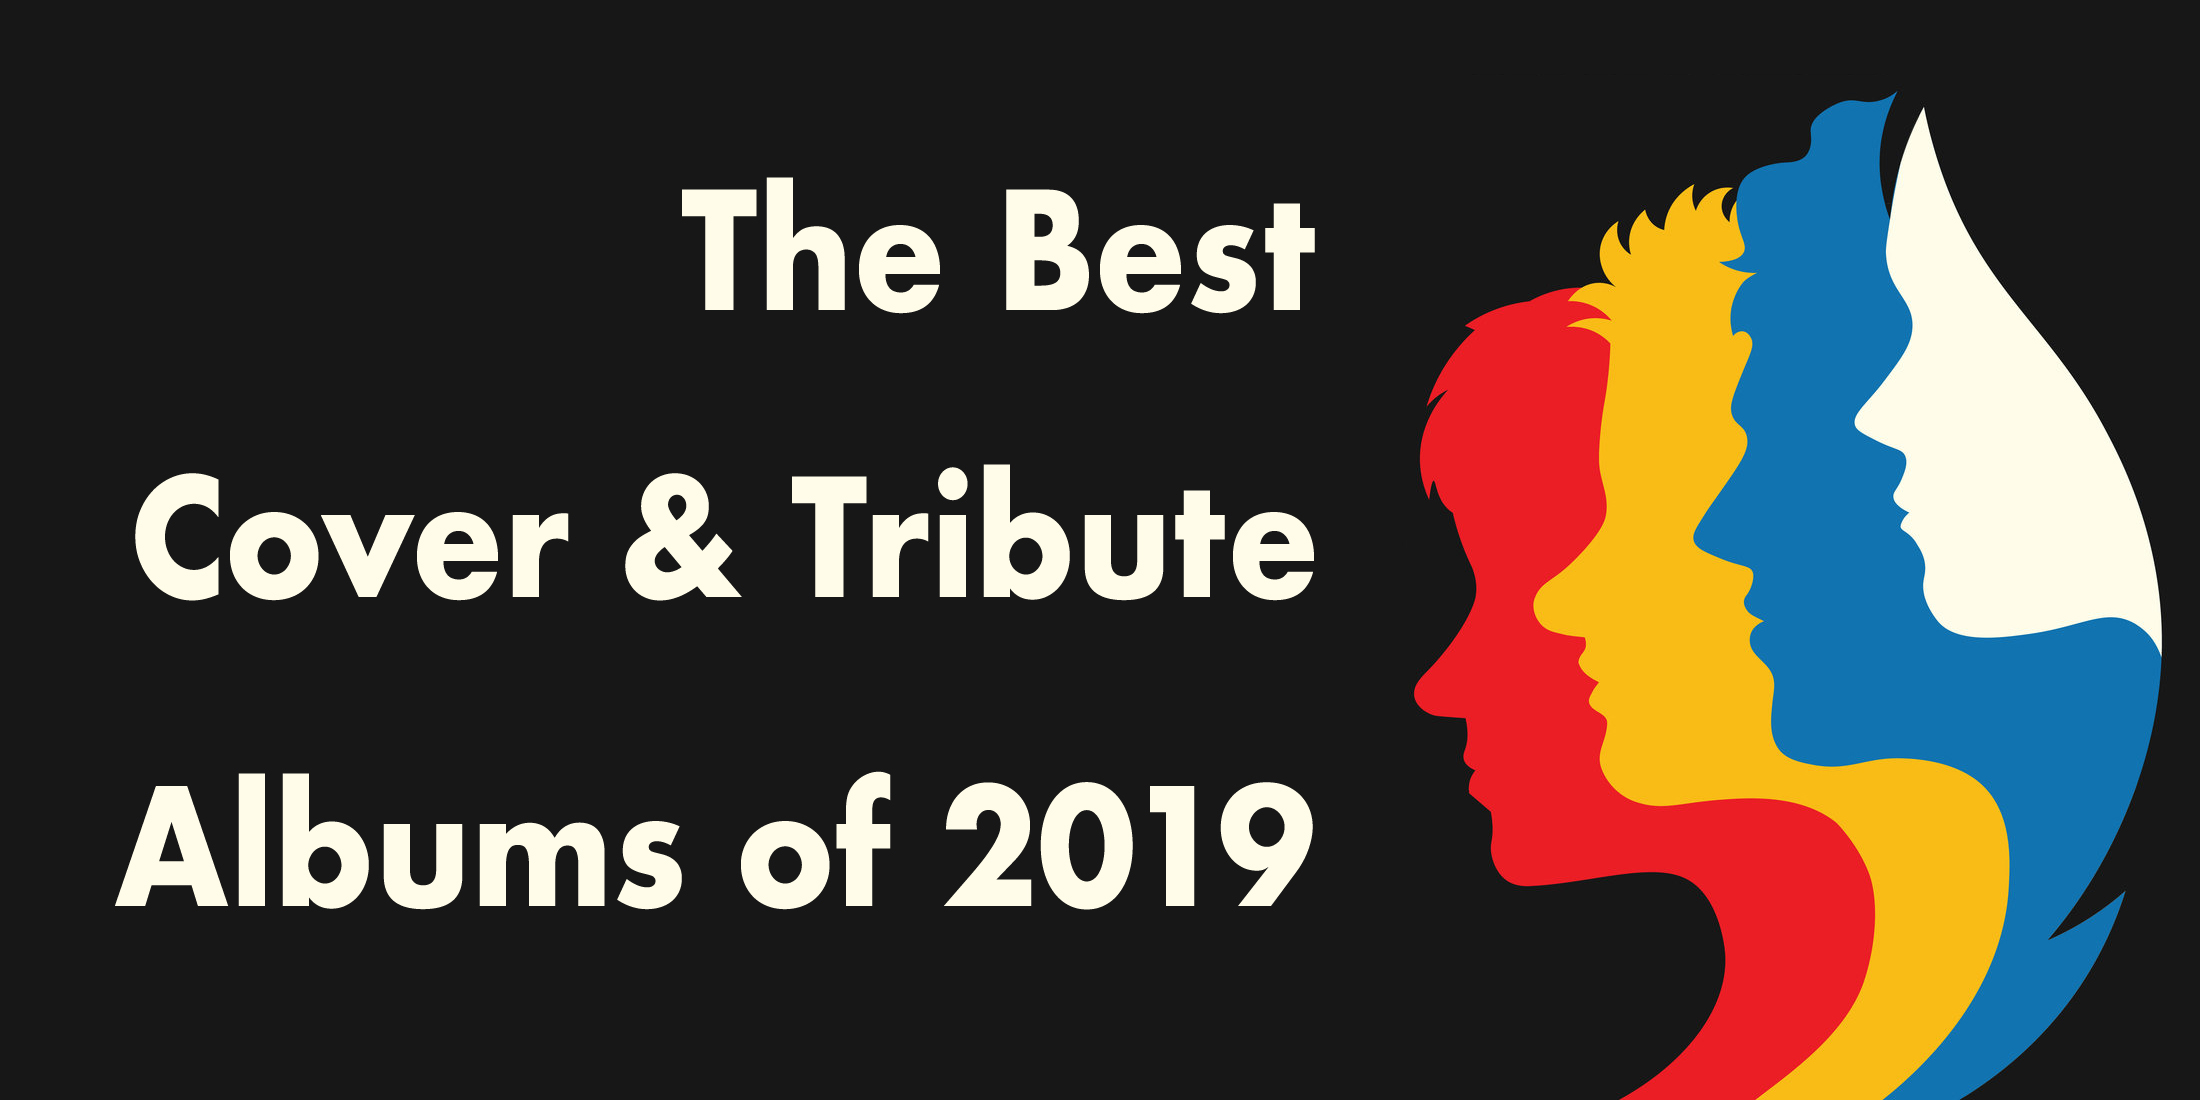 The Best Cover and Tribute Albums of 2019